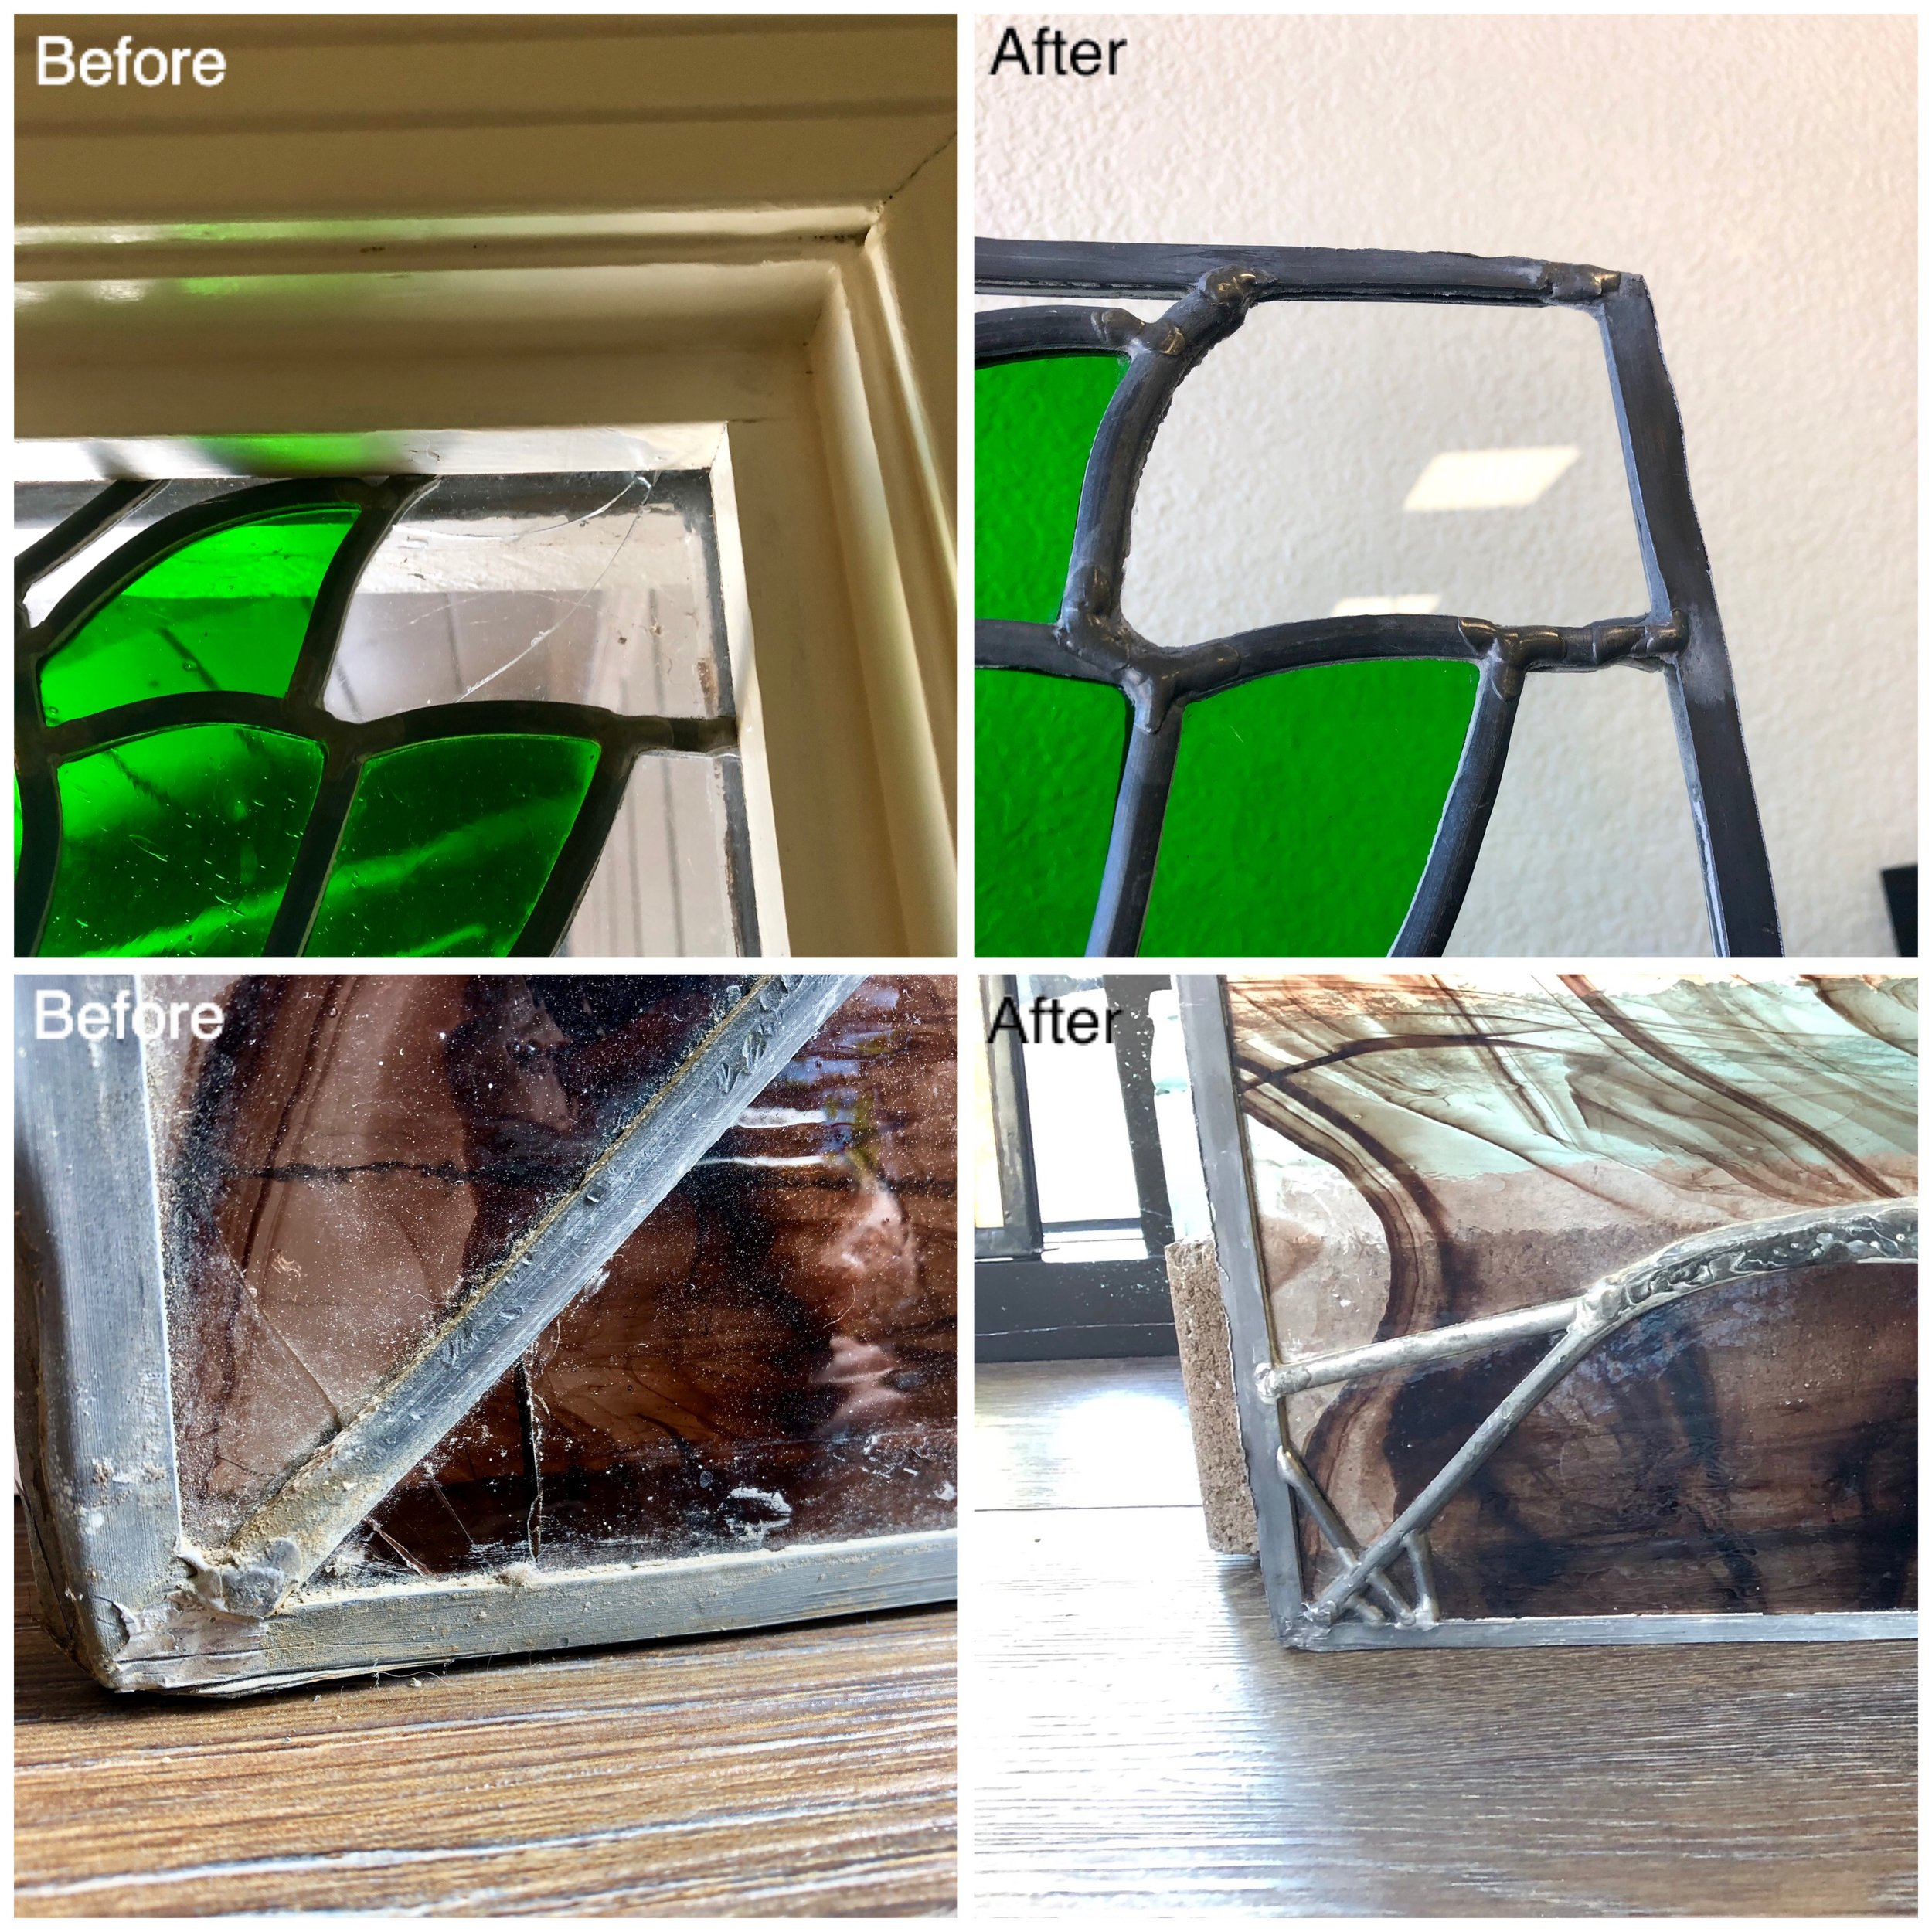 leaded glass stained repair studio design bay area legacy lead line metal glass lead vintage antique cracked.JPG